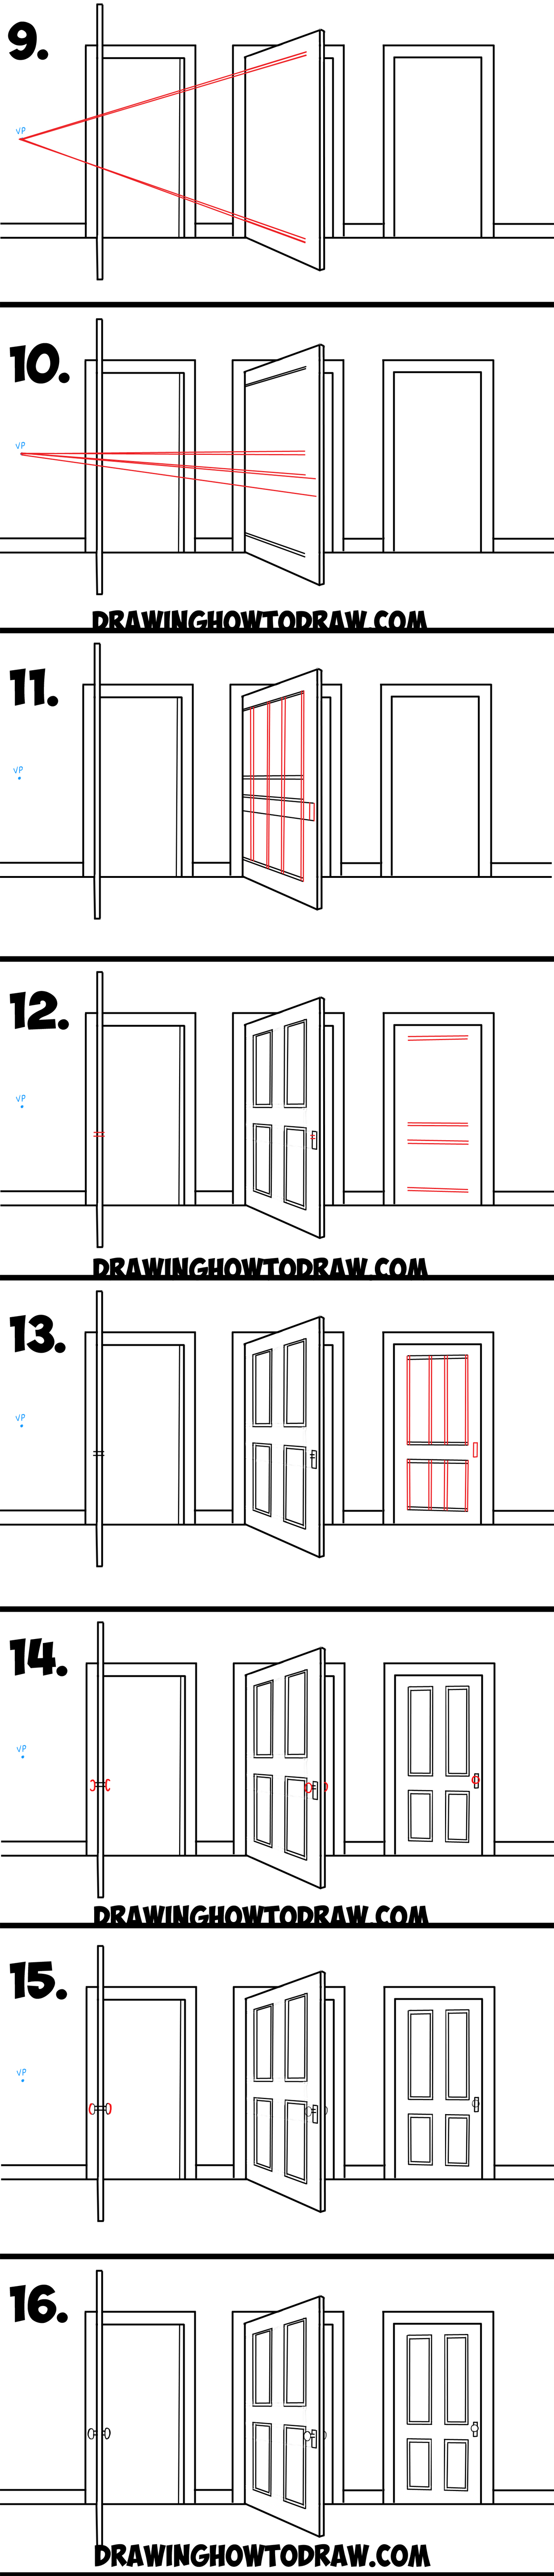 Open door drawing perspective - Learn How To Draw Open Closed And Opening Doors In 2 Point Perspective Simple